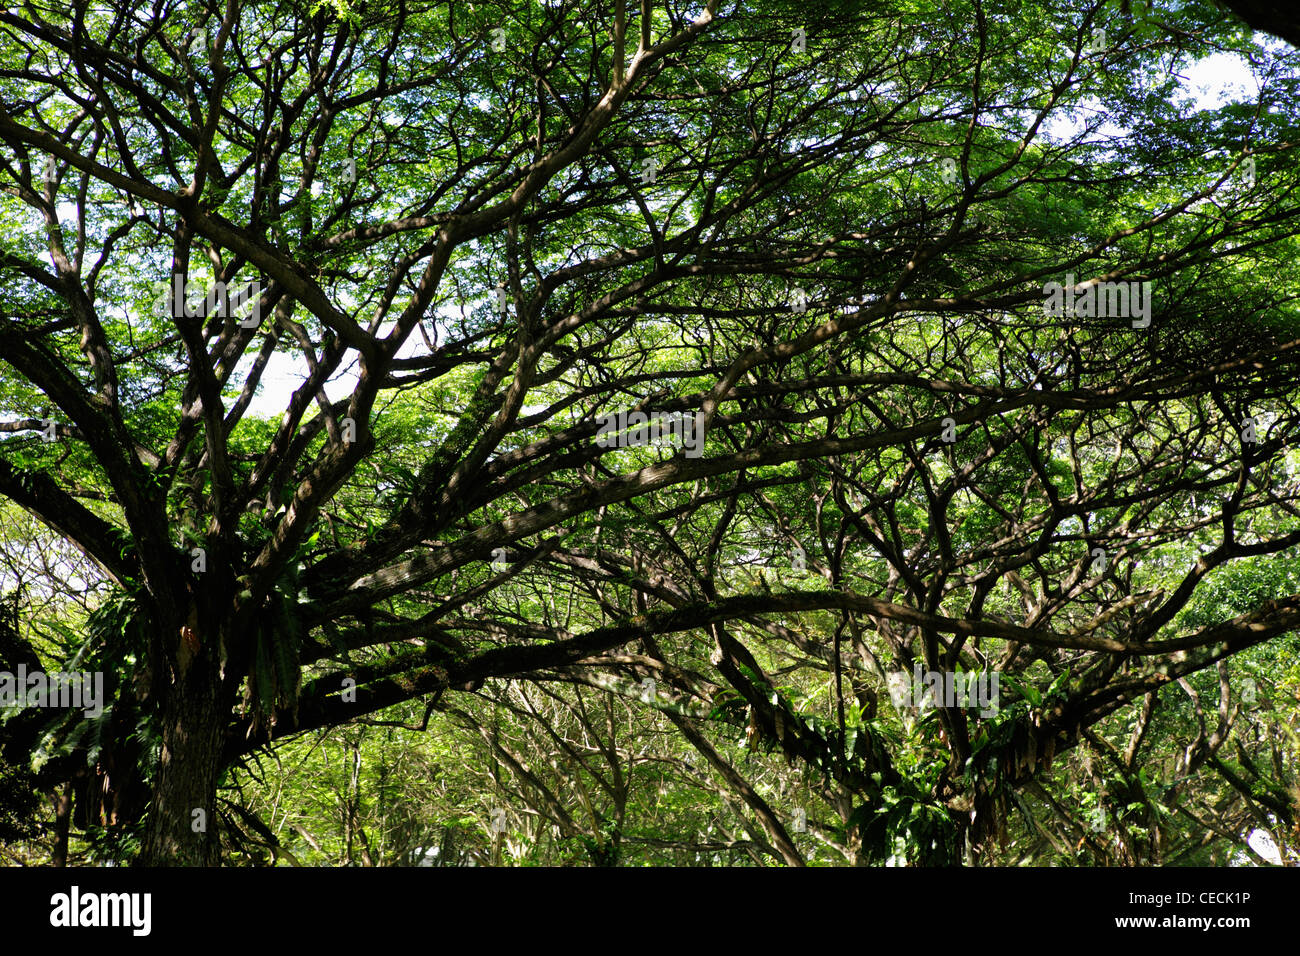 wide shot of branches and leaves of large trees - Stock Image